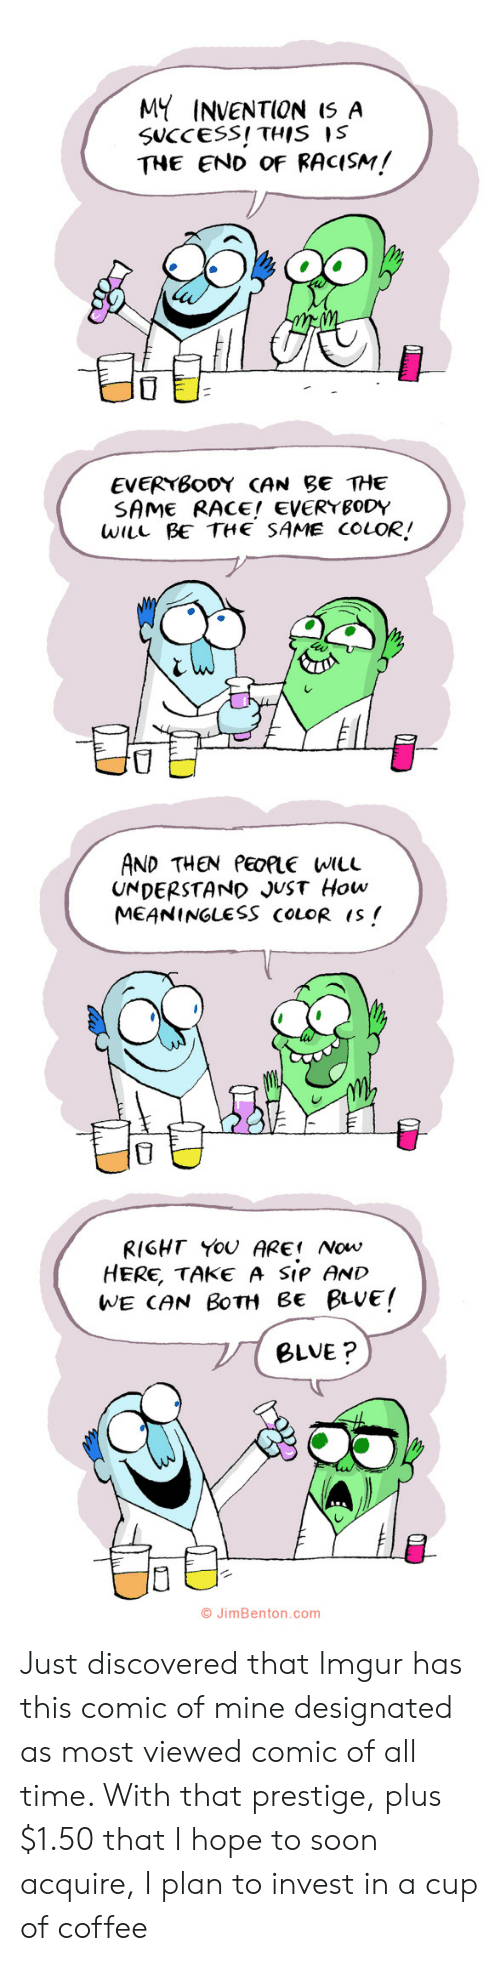 Of Mine: MY INVENTION I5 A  SUCCESS! THIS IS  THE END OF RACISM!  EVERYBODY CAN BE THE  SAME RACE! EVERYBODY  WILL BE THE SAME COLOR!  AND THEN PEOPLE WILL  UNDERSTAND JUST How  MEANINGLESS COLOR IS  RIGHT YOU ARE Now  HERE, TAKE A SIP AND  WE CAN BOTH Be BLUE!  BLVE?  O JimBenton.com  י Just discovered that Imgur has this comic of mine designated as most viewed comic of all time. With that prestige, plus $1.50 that I hope to soon acquire, I plan to invest in a cup of coffee